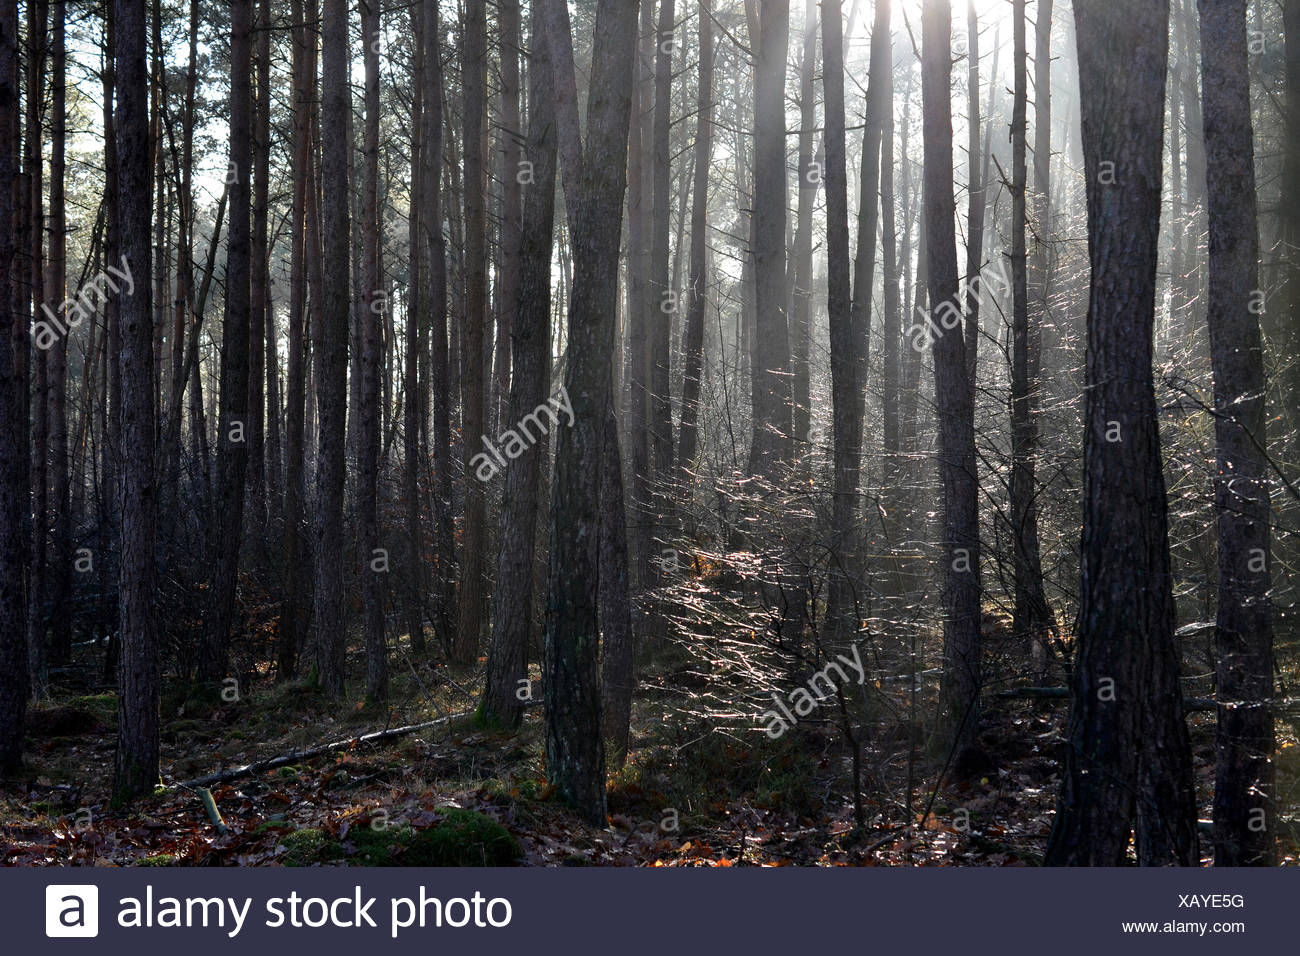 Mysticism with backlight. Stock Photo